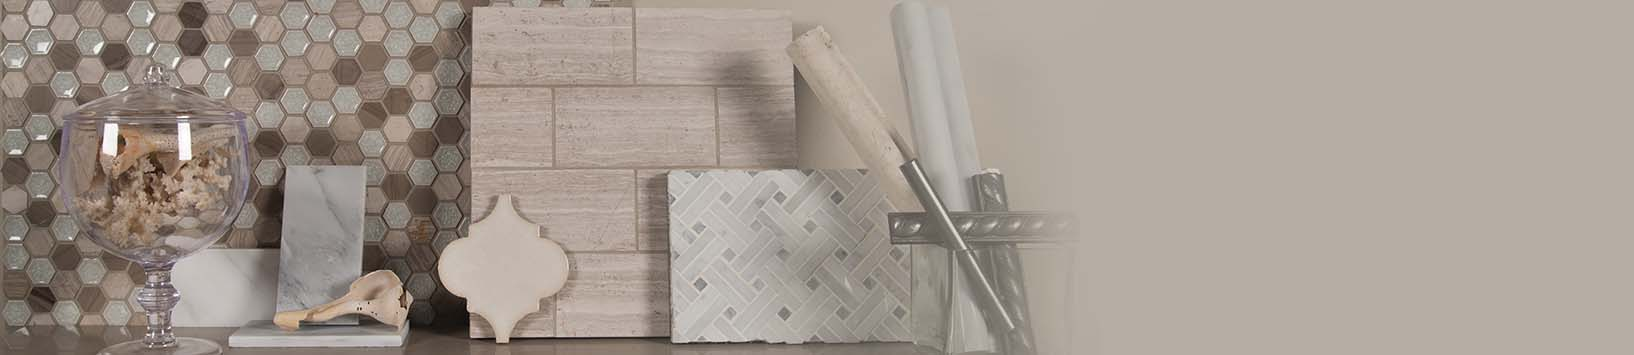 All Wall Tile & Backsplash Tile Backsplash Tile